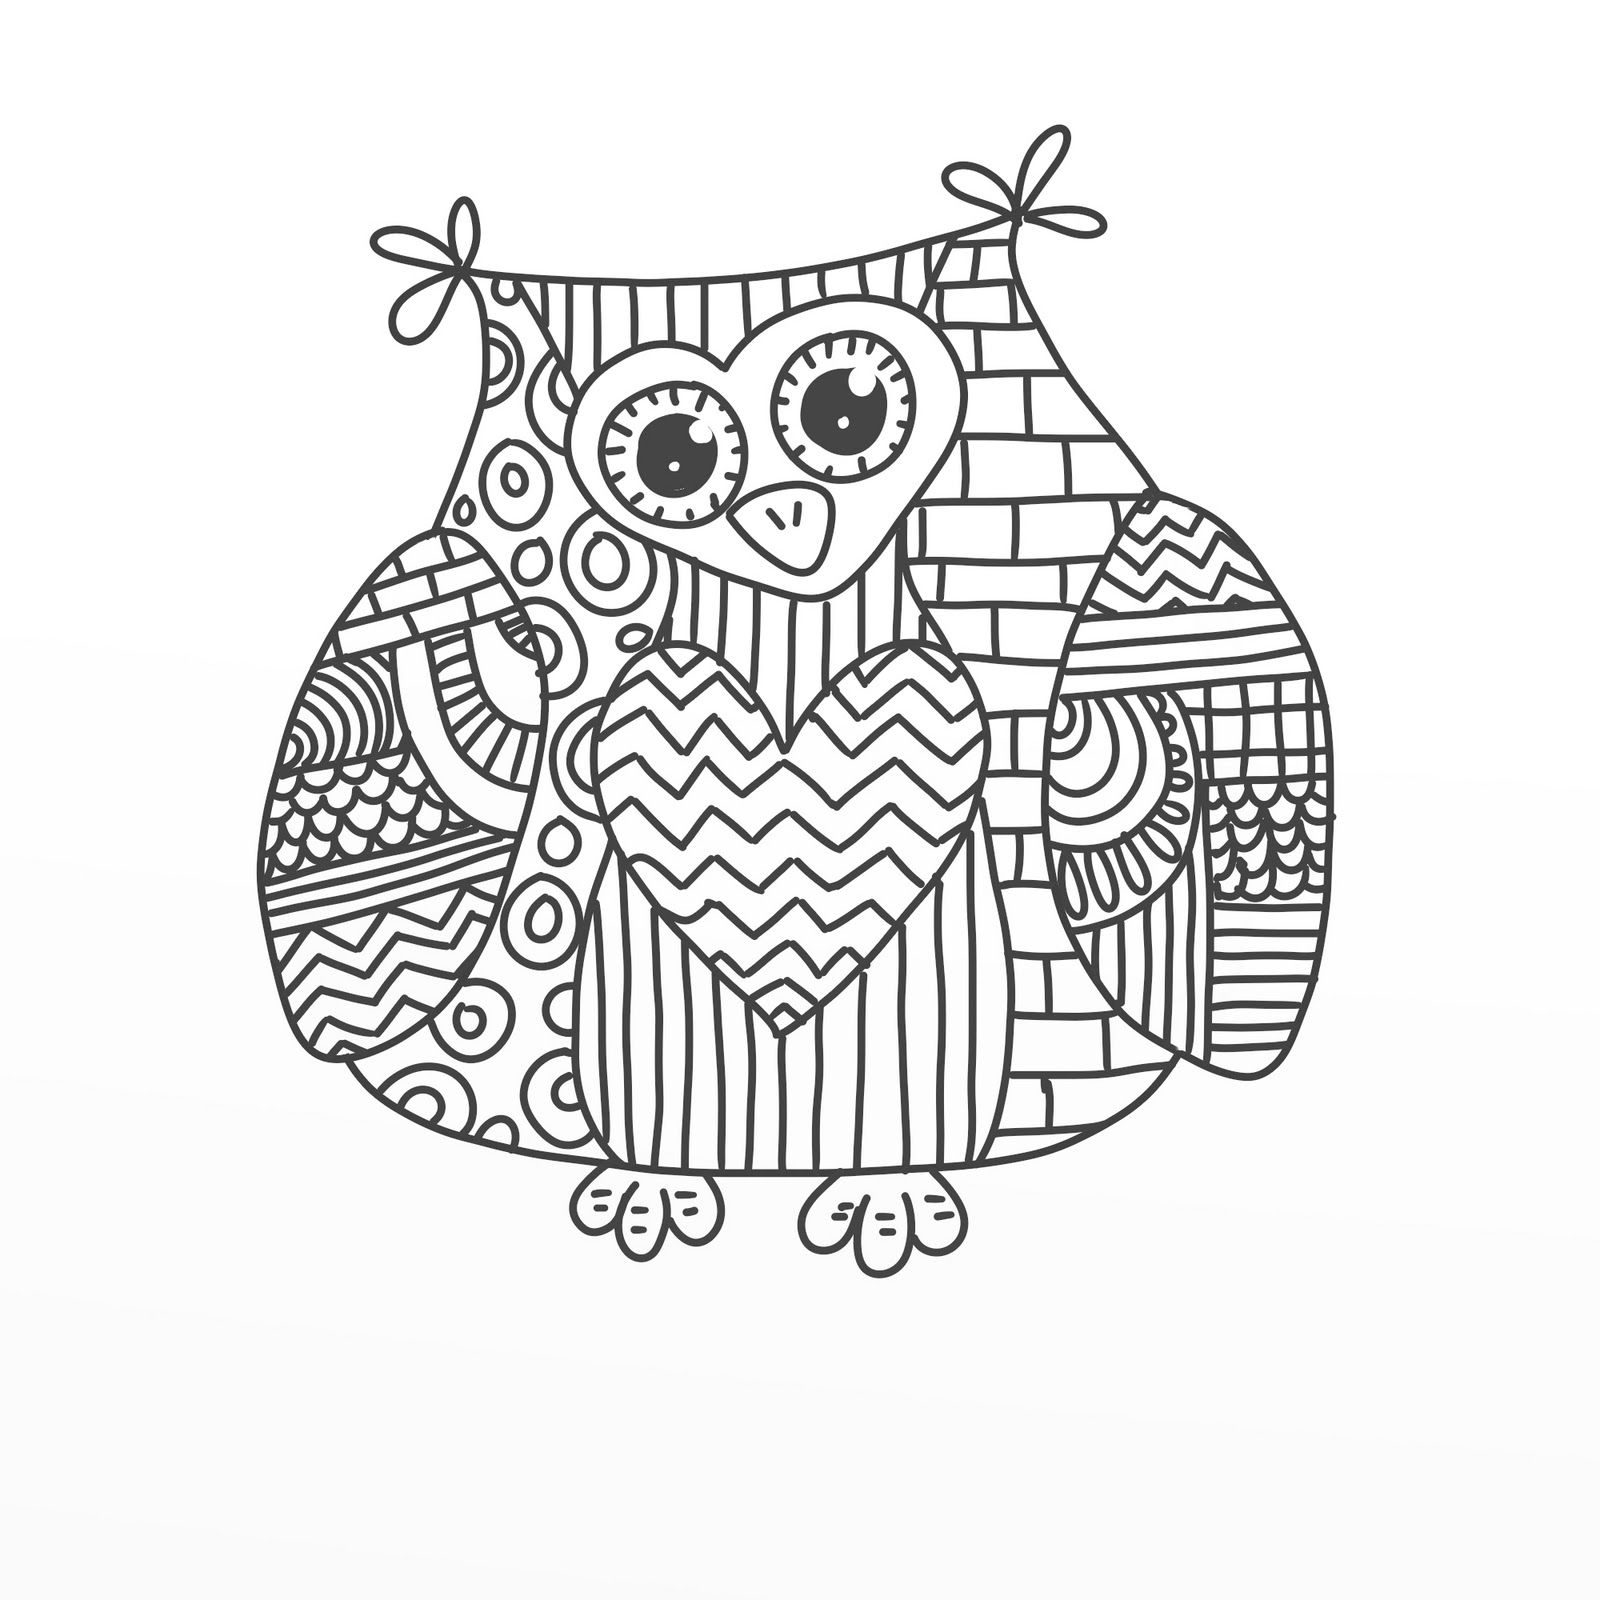 owl coloring pages free printable cute owl coloring pages for adults coloring pages owl free pages coloring printable